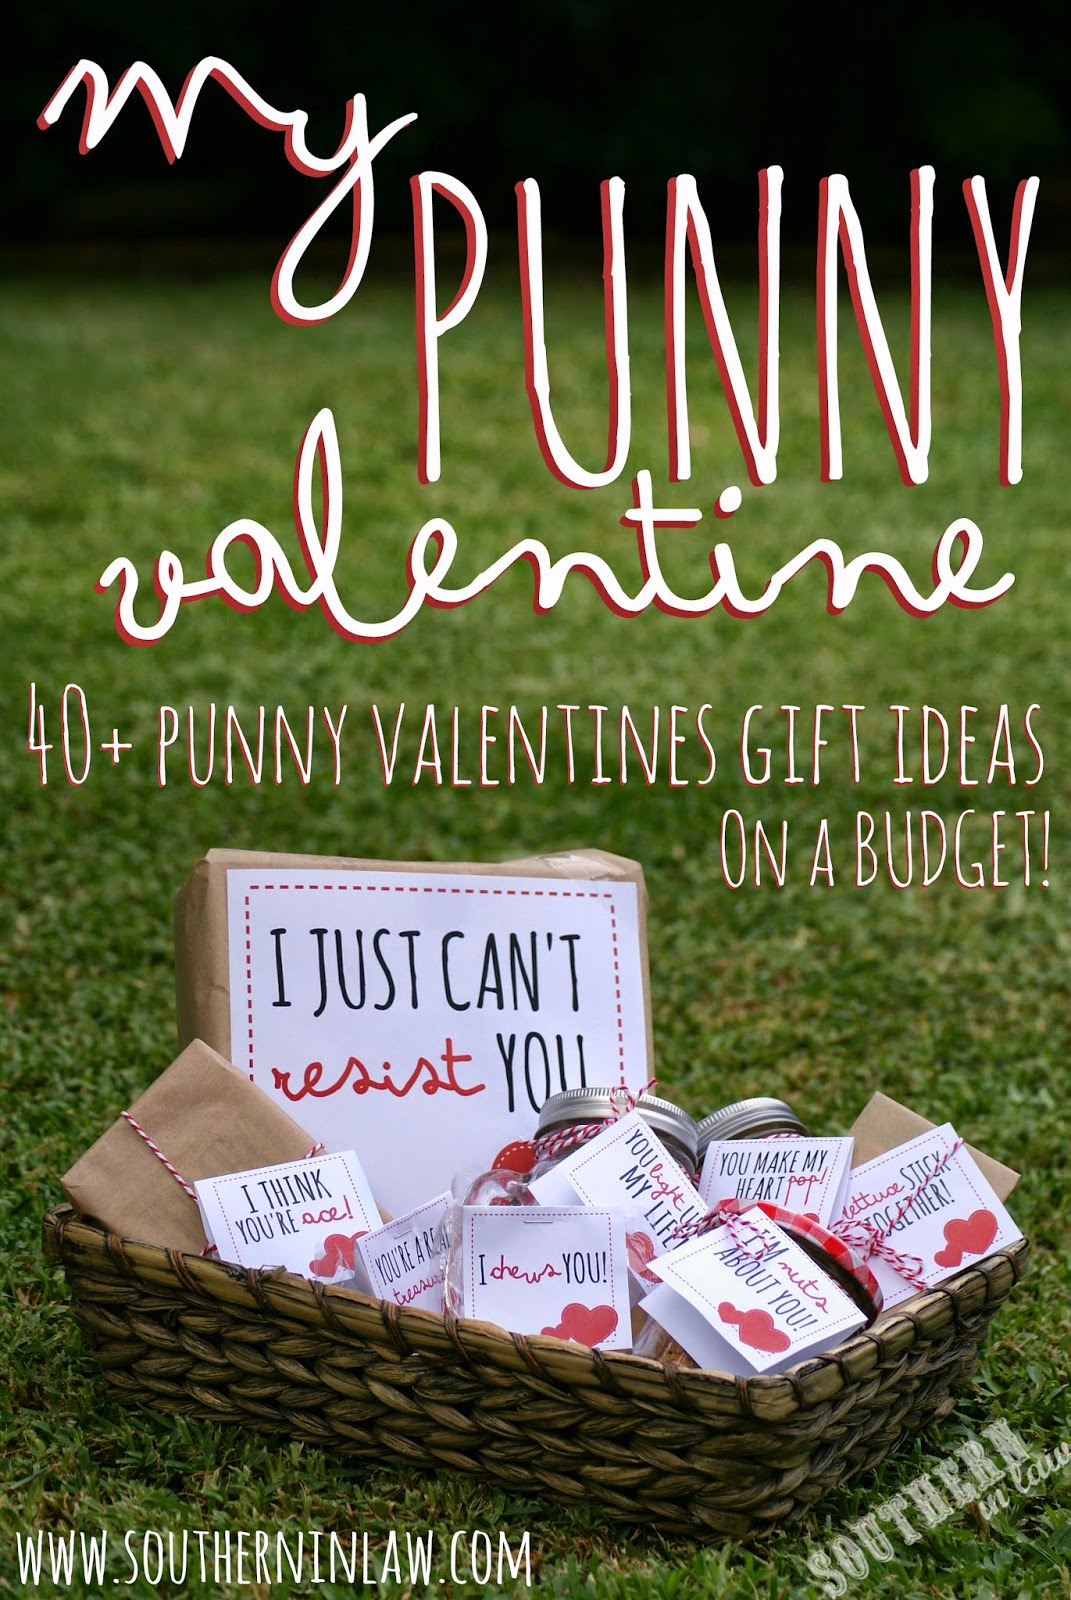 My Punny Valentine: 40+ Punny Valentines Gift Ideas with FREE Printable Gift Tags!